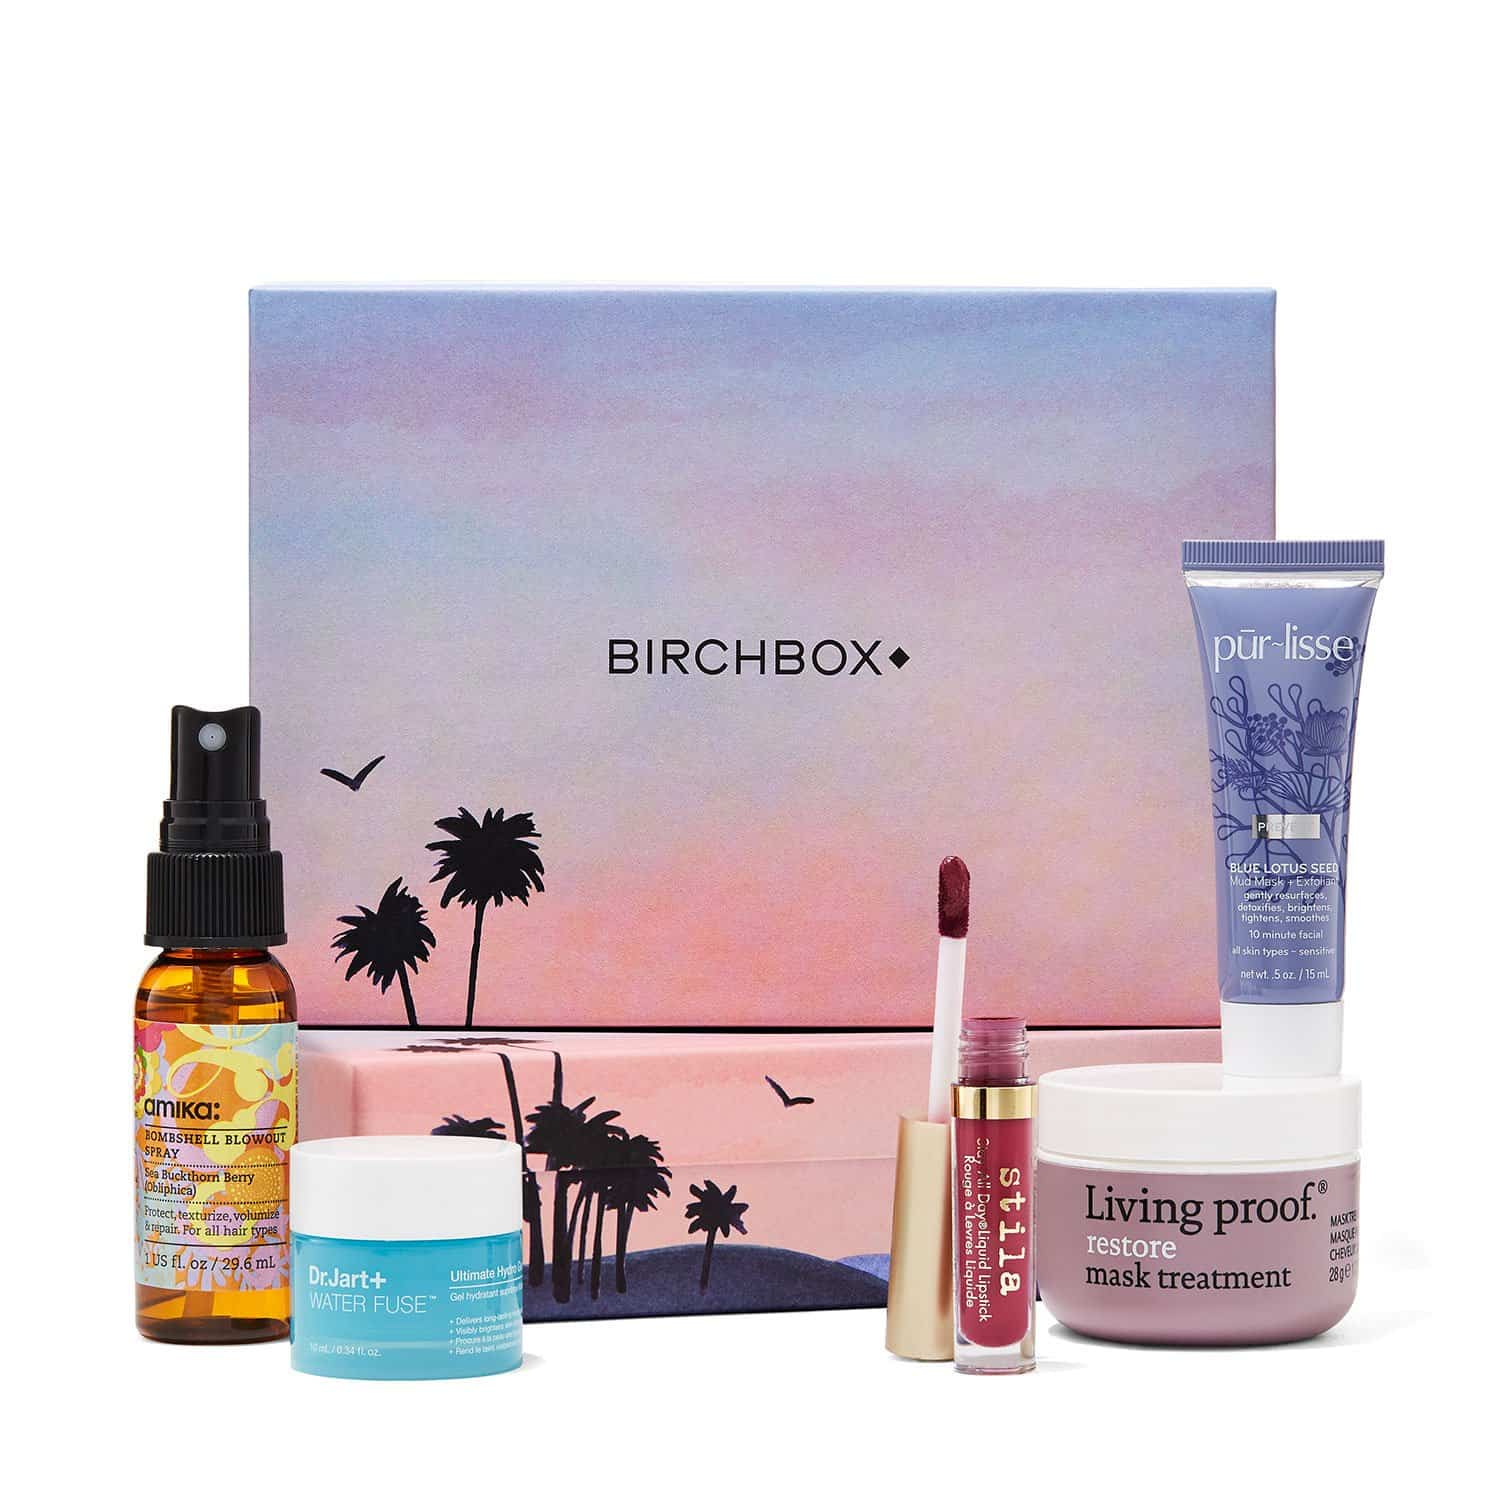 Birchbox August 2017 Easy Does It Curated Box Available Now in the Shop!